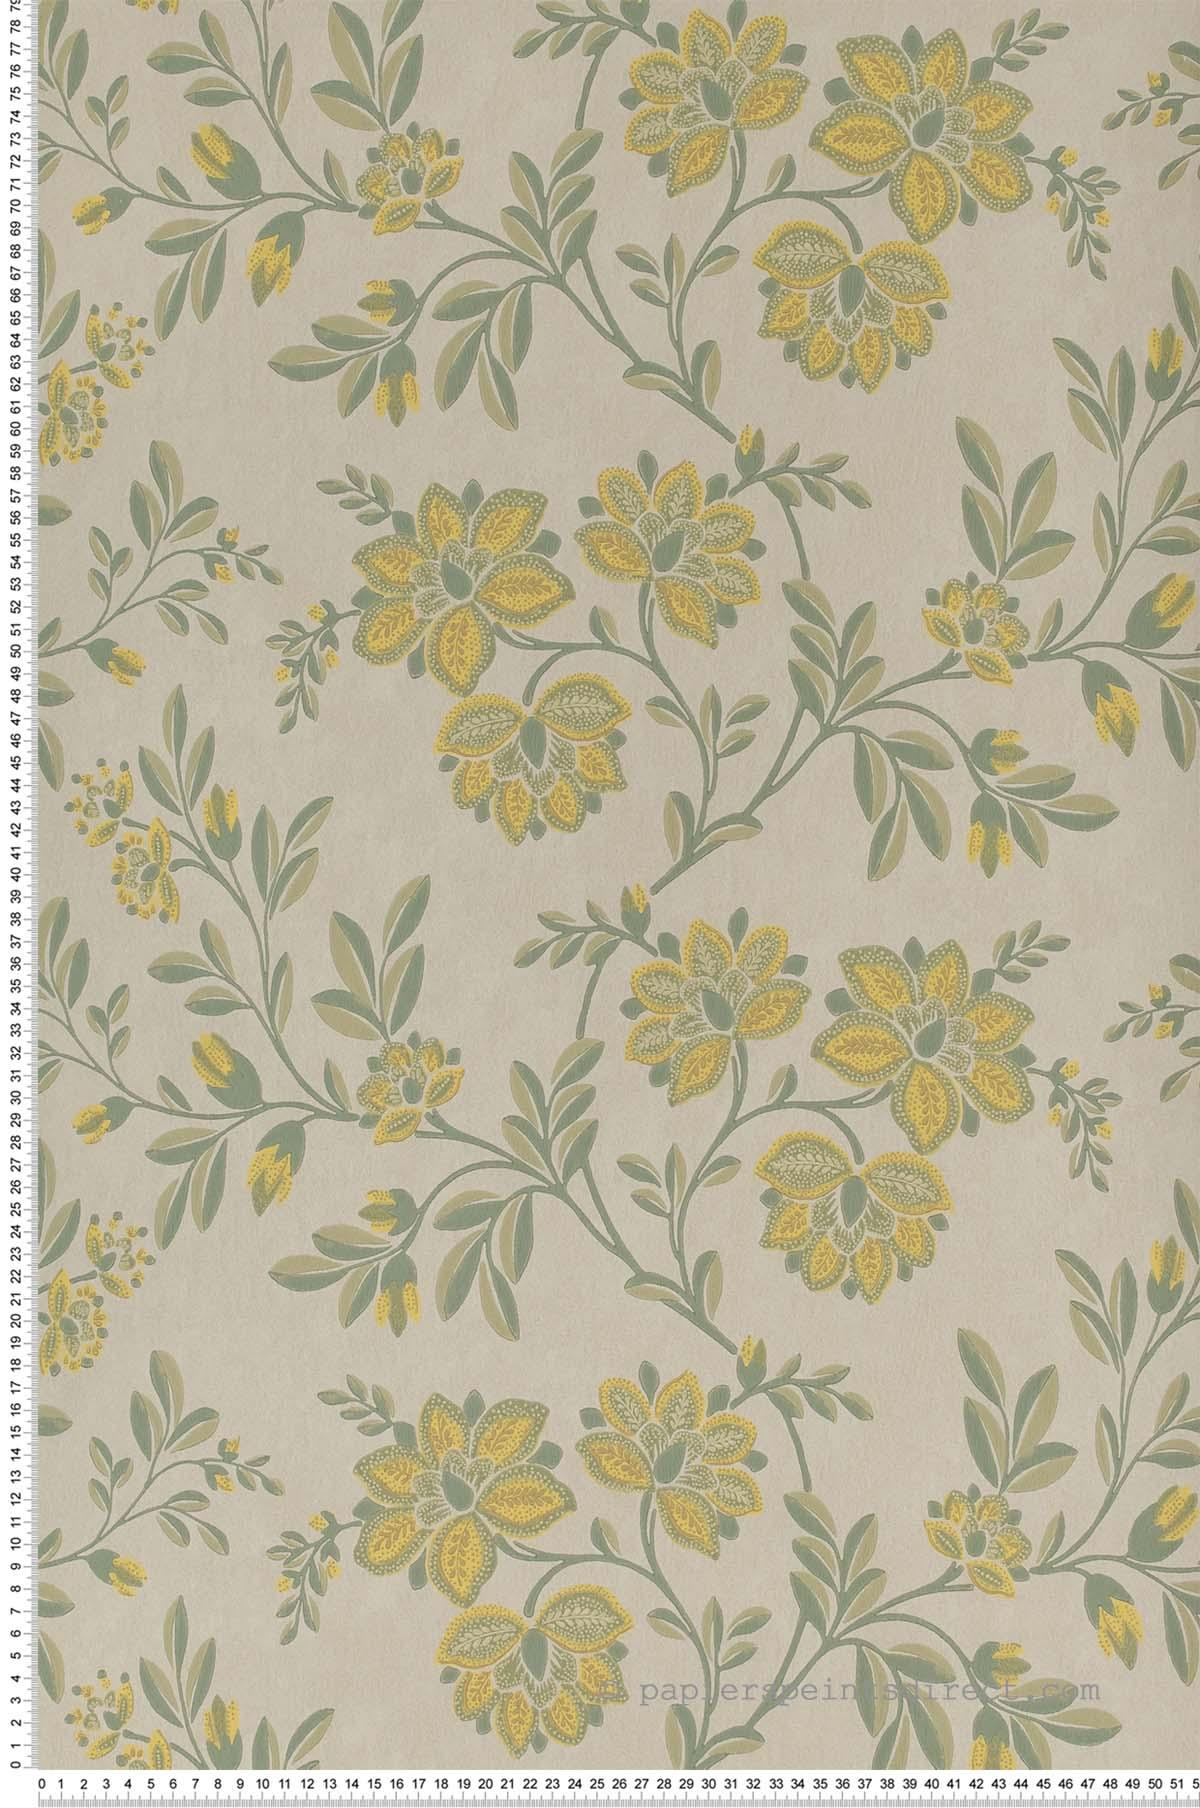 Stitch highland - Papier peint Archive Trails de Little Greene